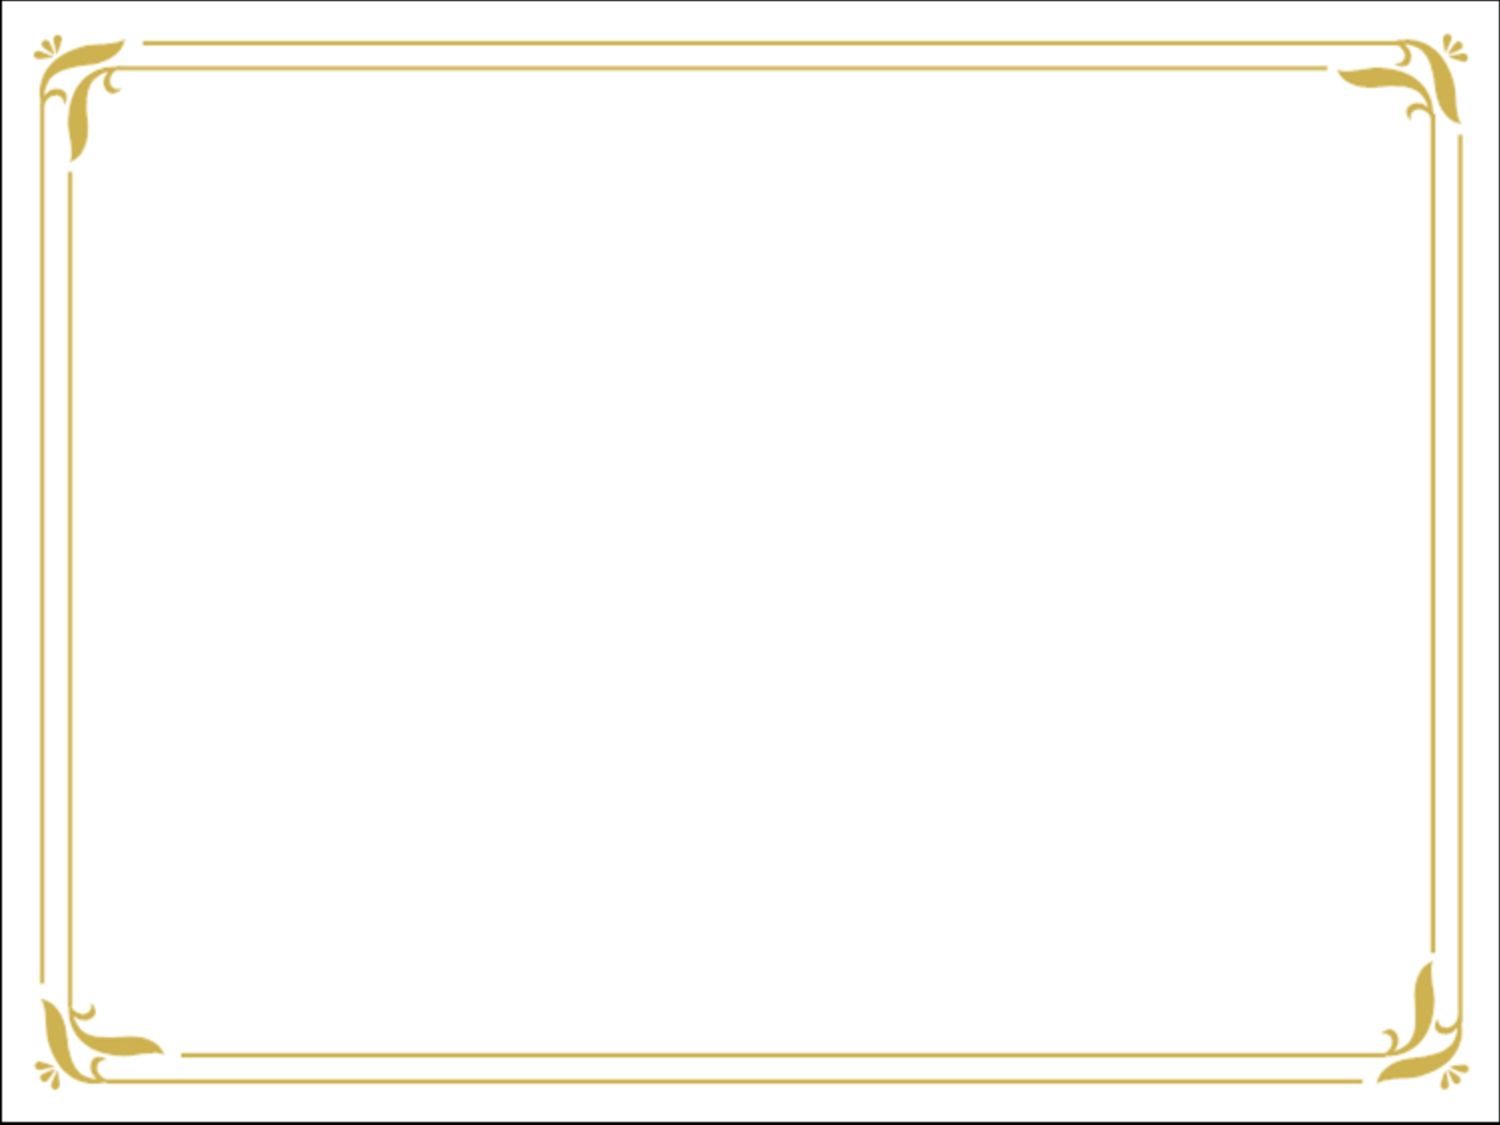 download simple gold certificate border ppt template from the above